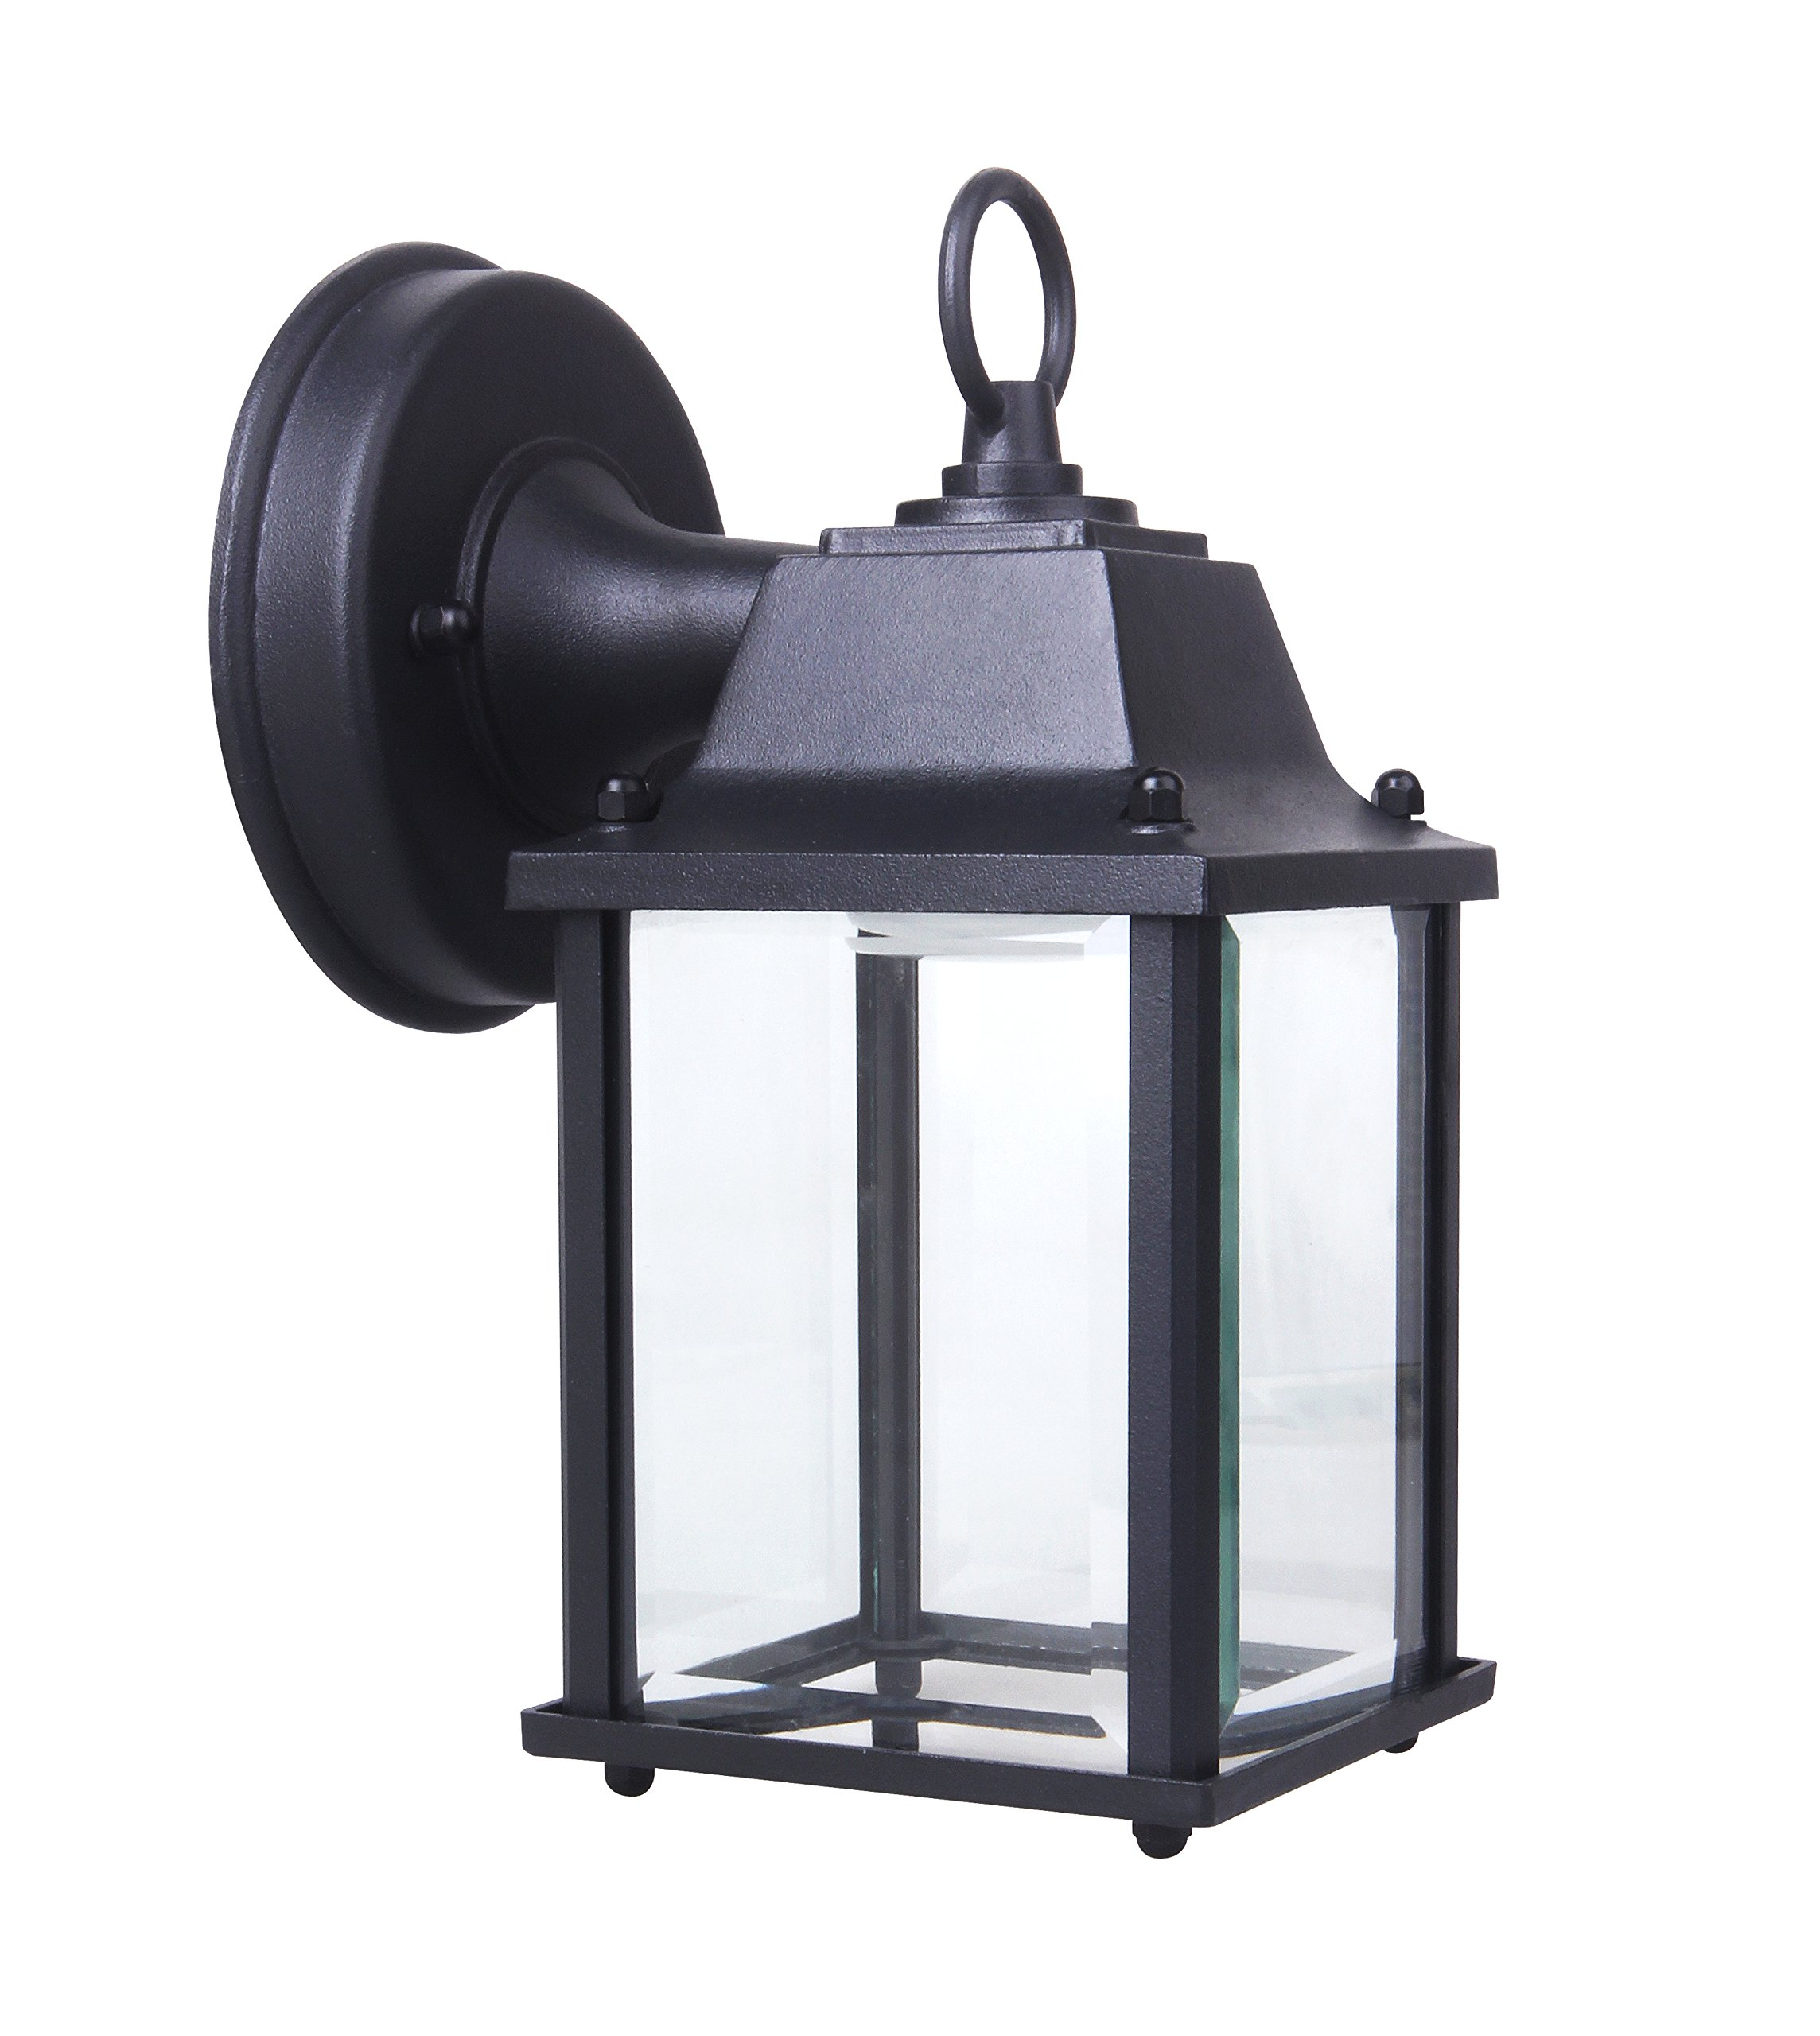 Yeuloum LED Outdoor Wall Lantern Wall Sconce for Porch Light, 9.5W Replace 75W, 800 Lumen, Aluminum Housing Plus Glass, Small Size but Bright